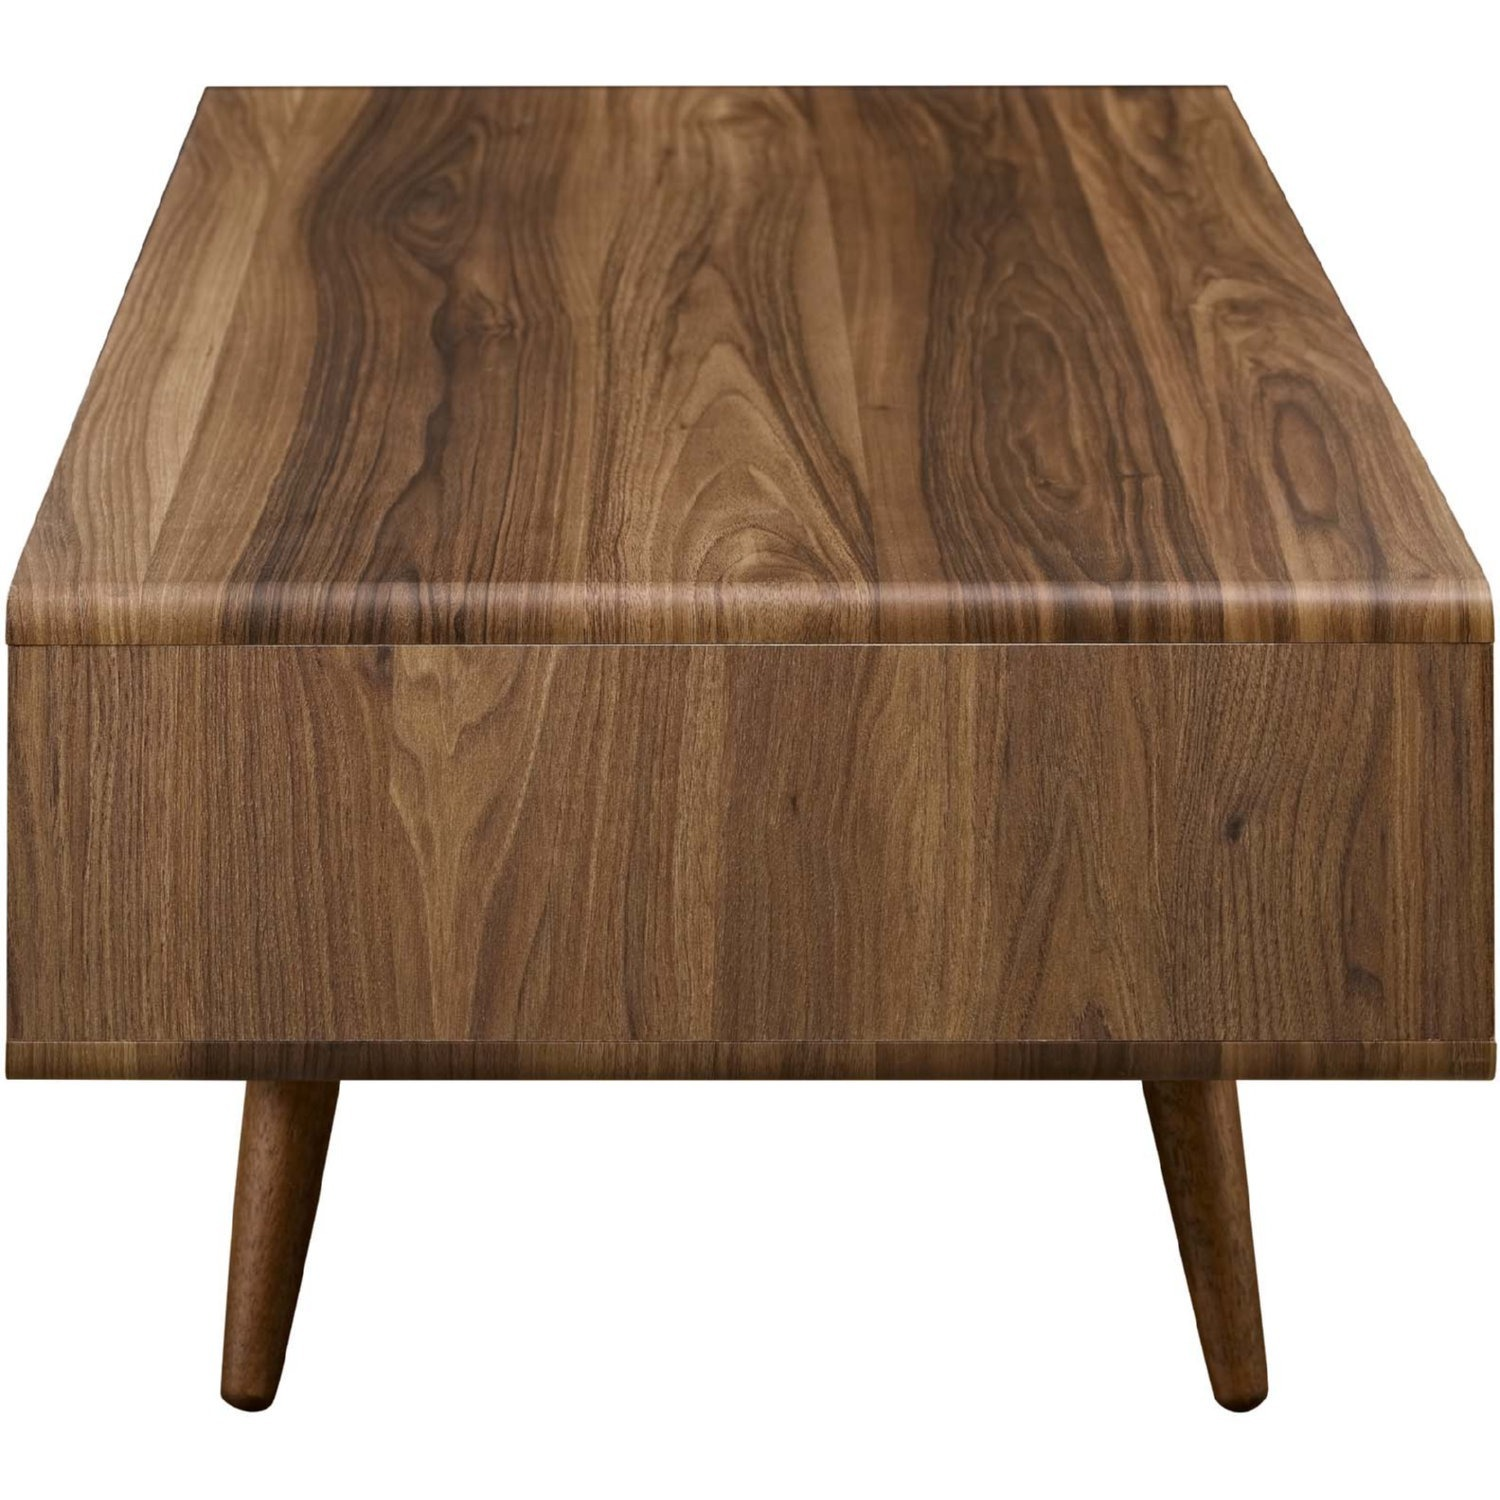 Modern Style Coffee Table In Walnut Finish - image-2